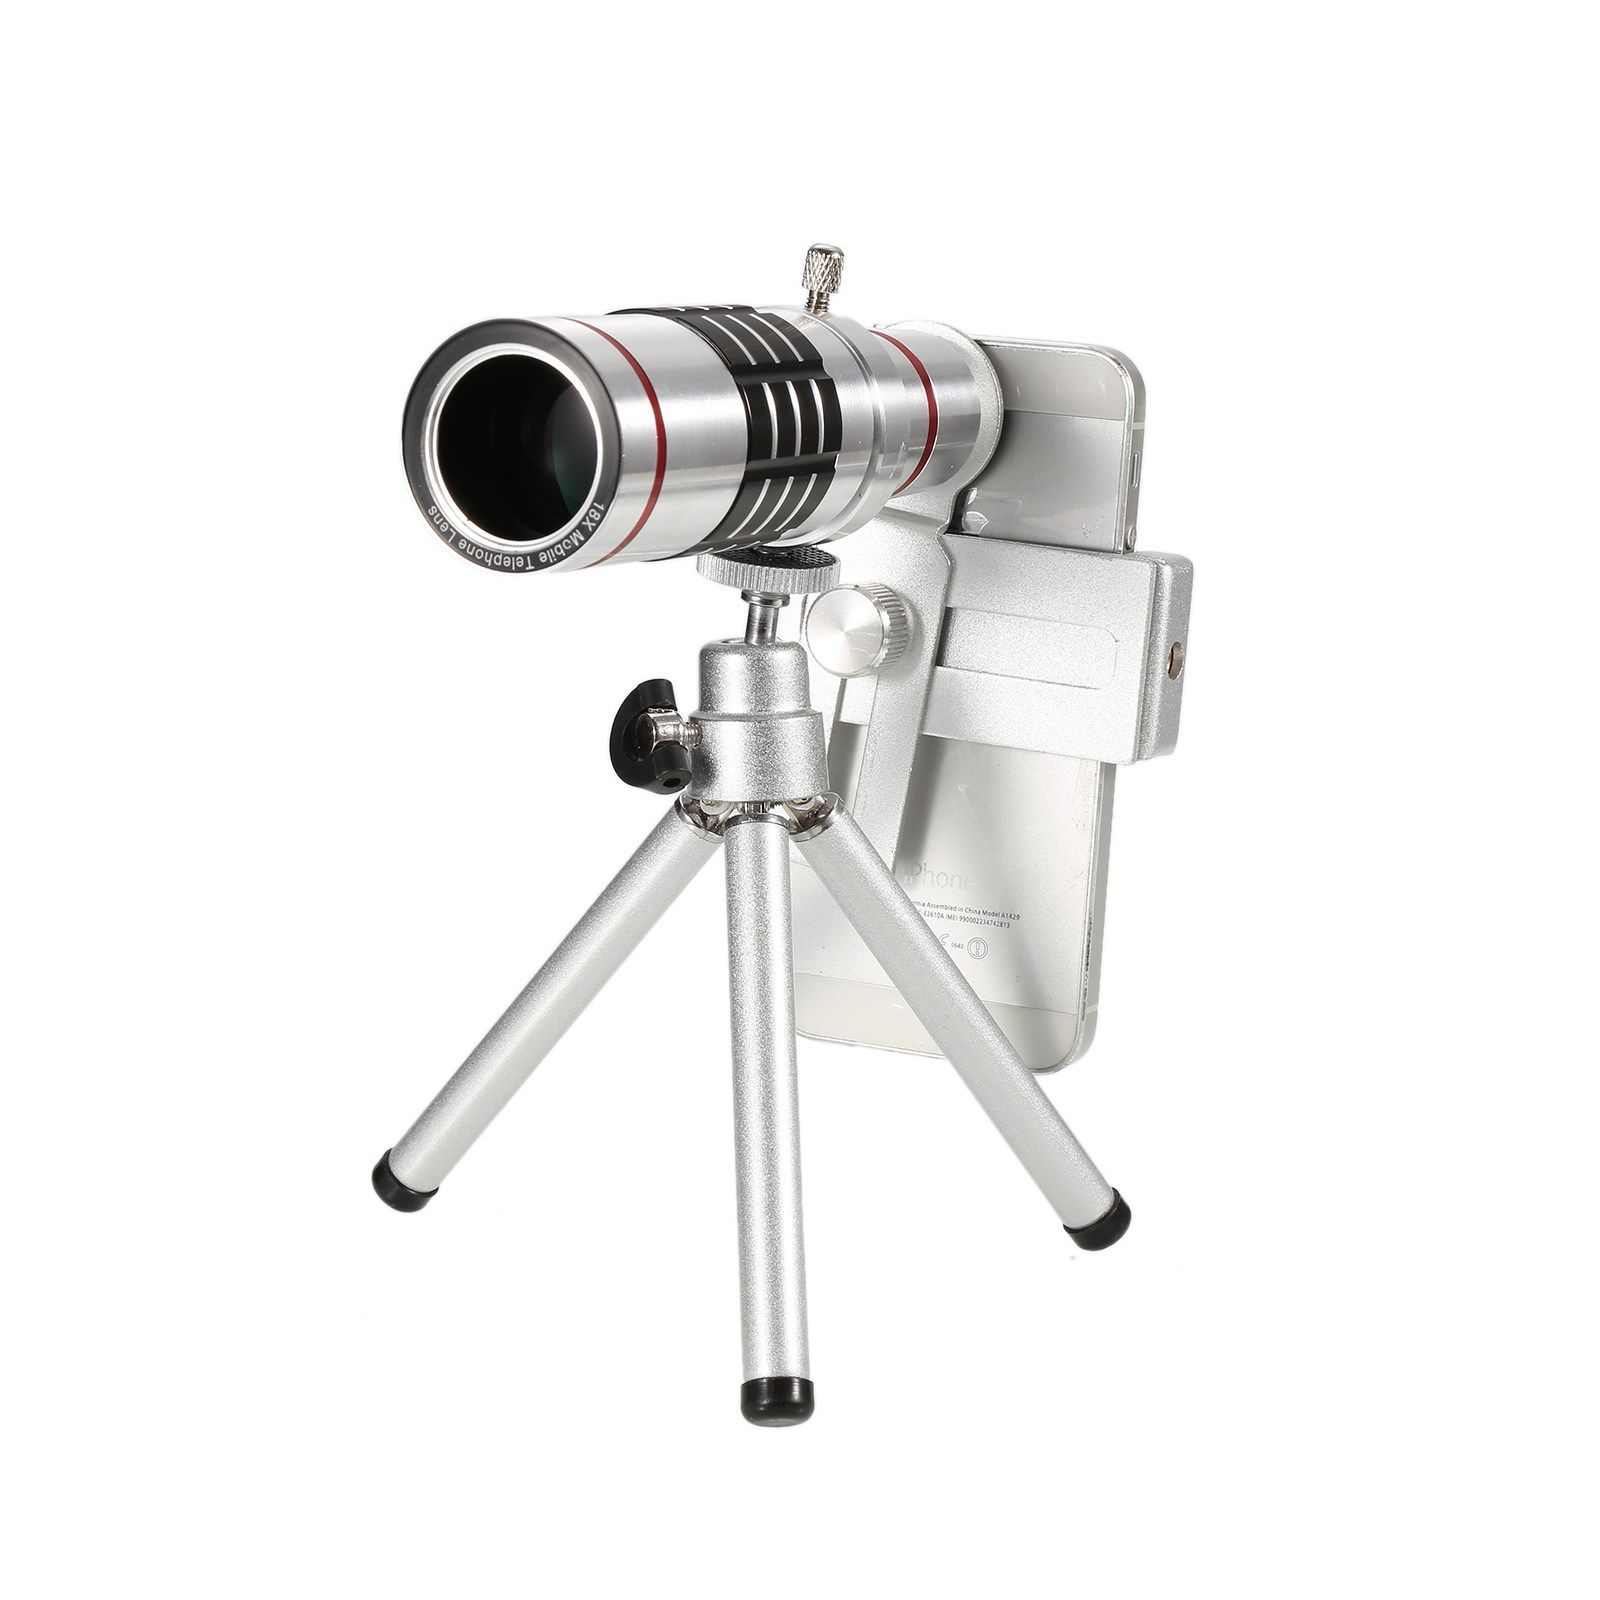 Smartphone Camera Zoom Lens Tripod Kit for iPhone